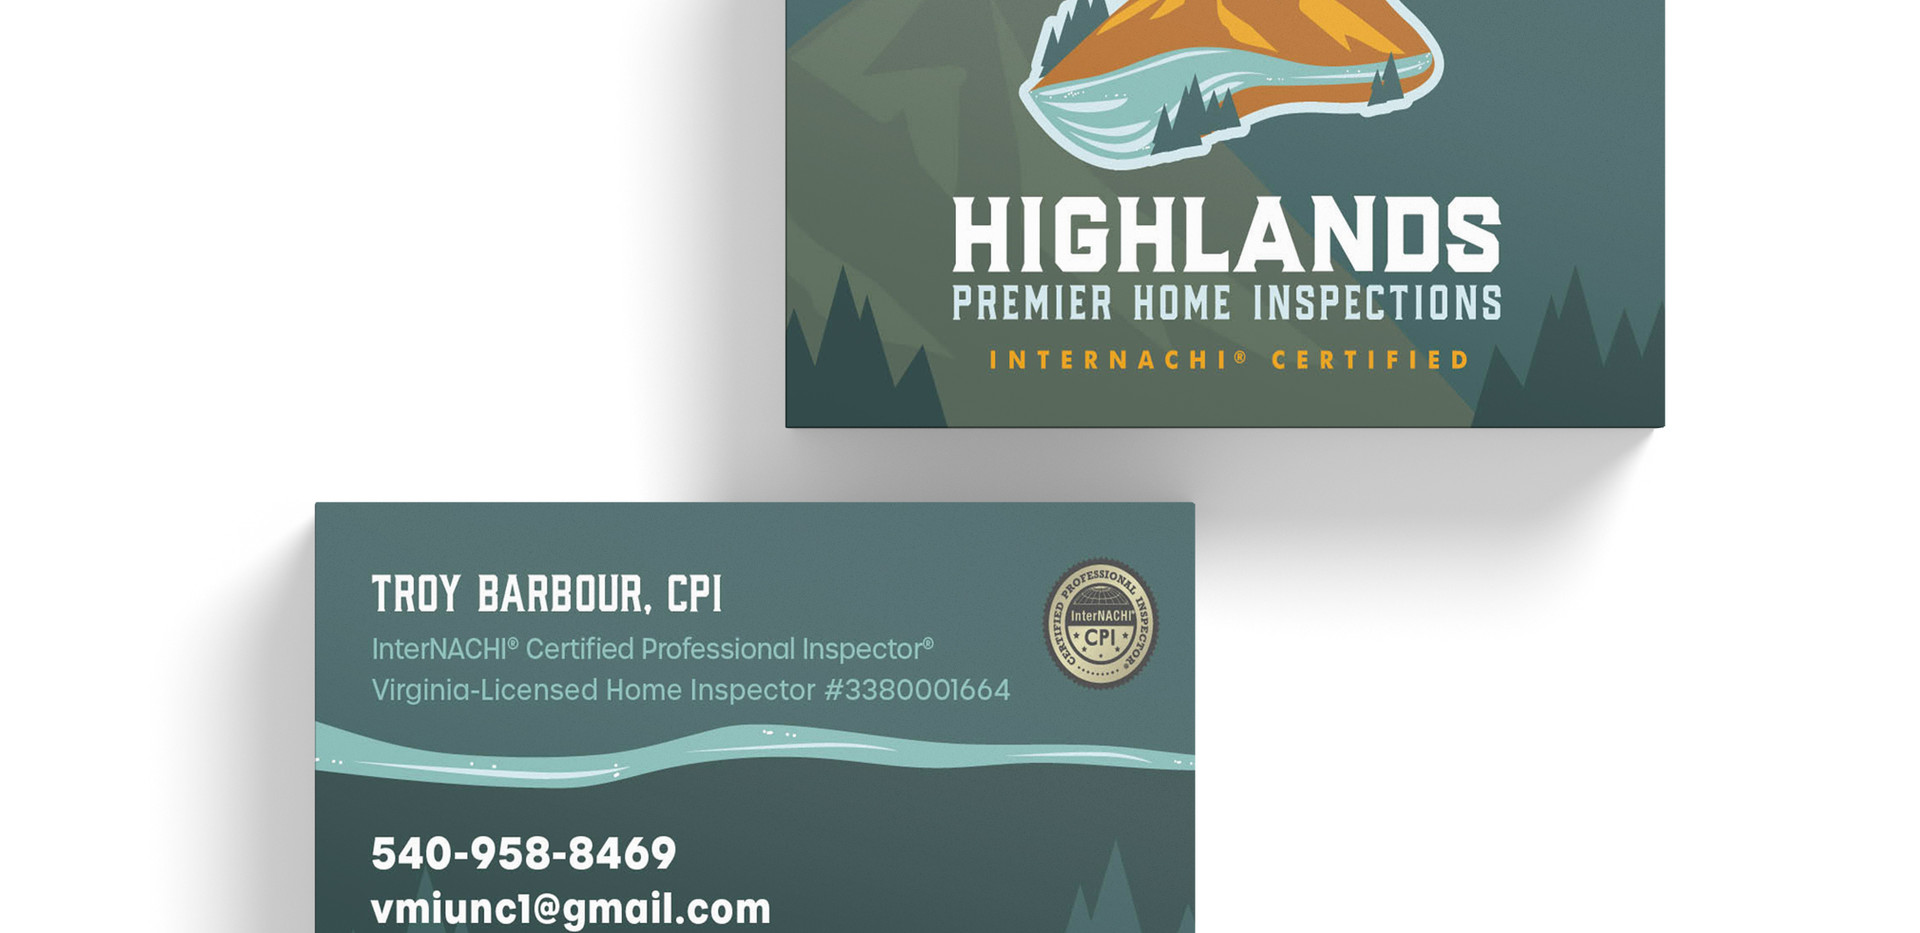 Highlands Premier Home Inspections